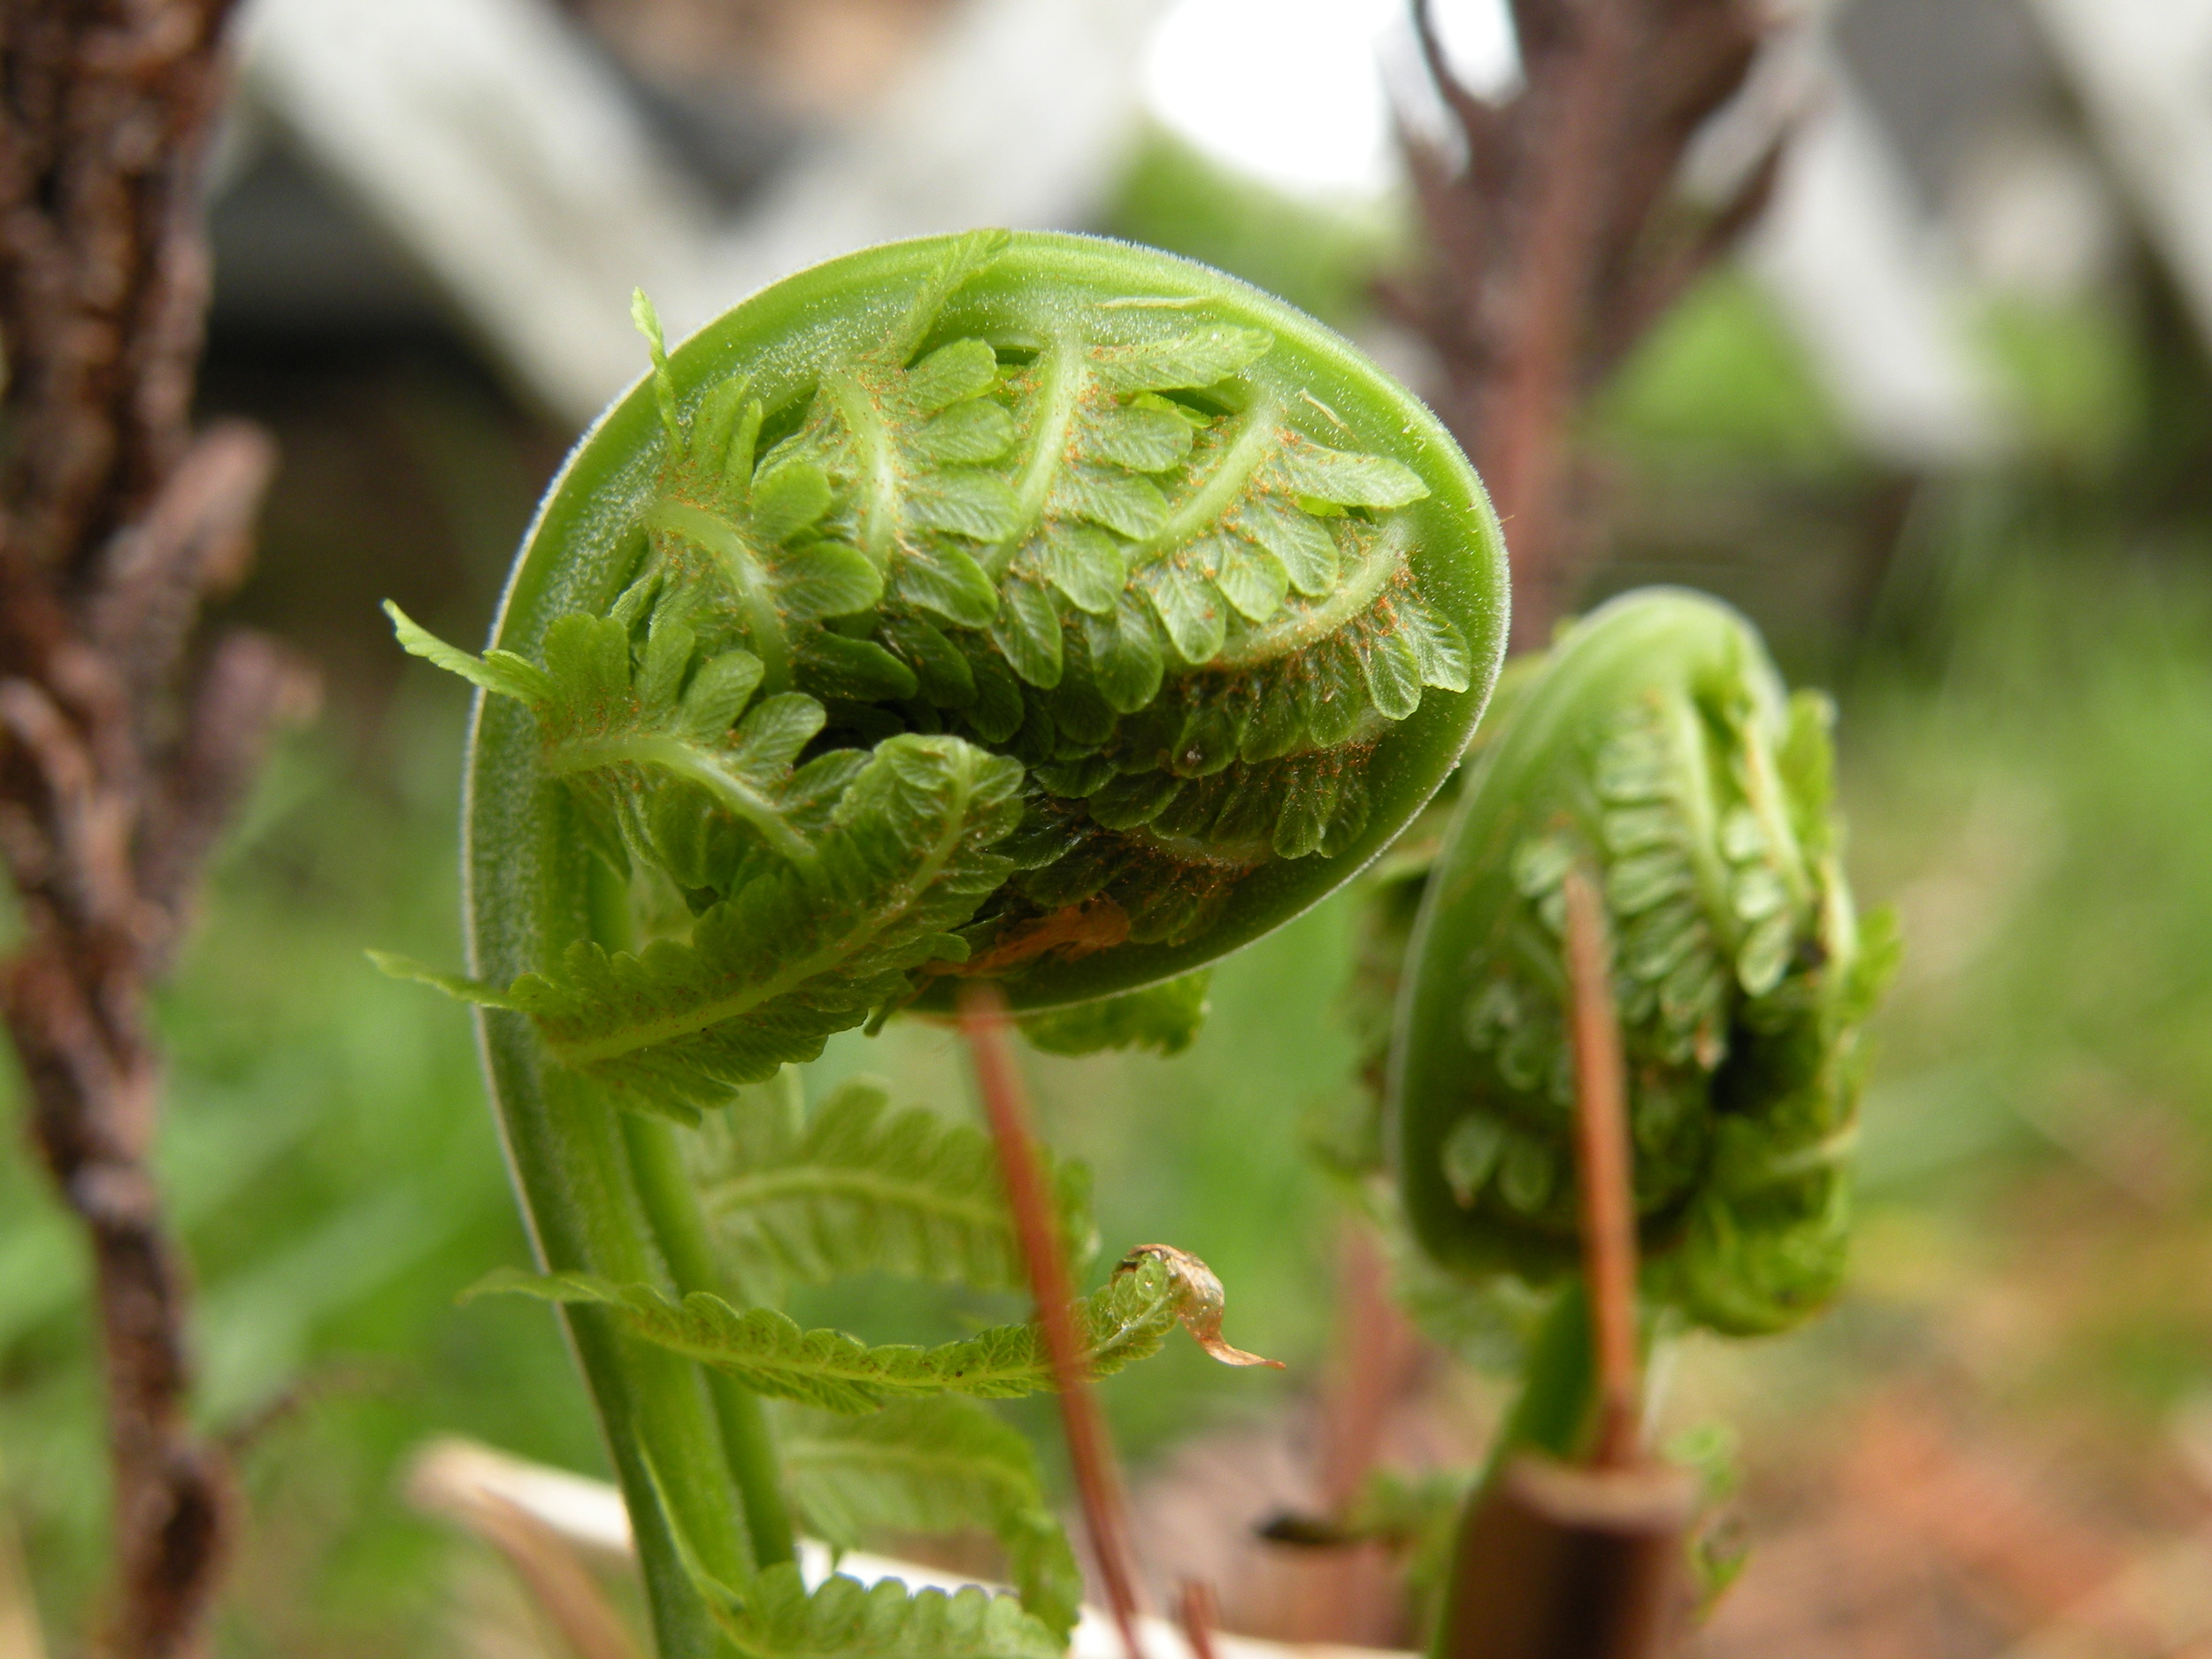 Fiddleheads, young fern leaves unfurling, fine tune the forest floor. Despite setbacks, mother nature always provides us with a hit of spring ephemeral mojo. Photo by Rob McClure